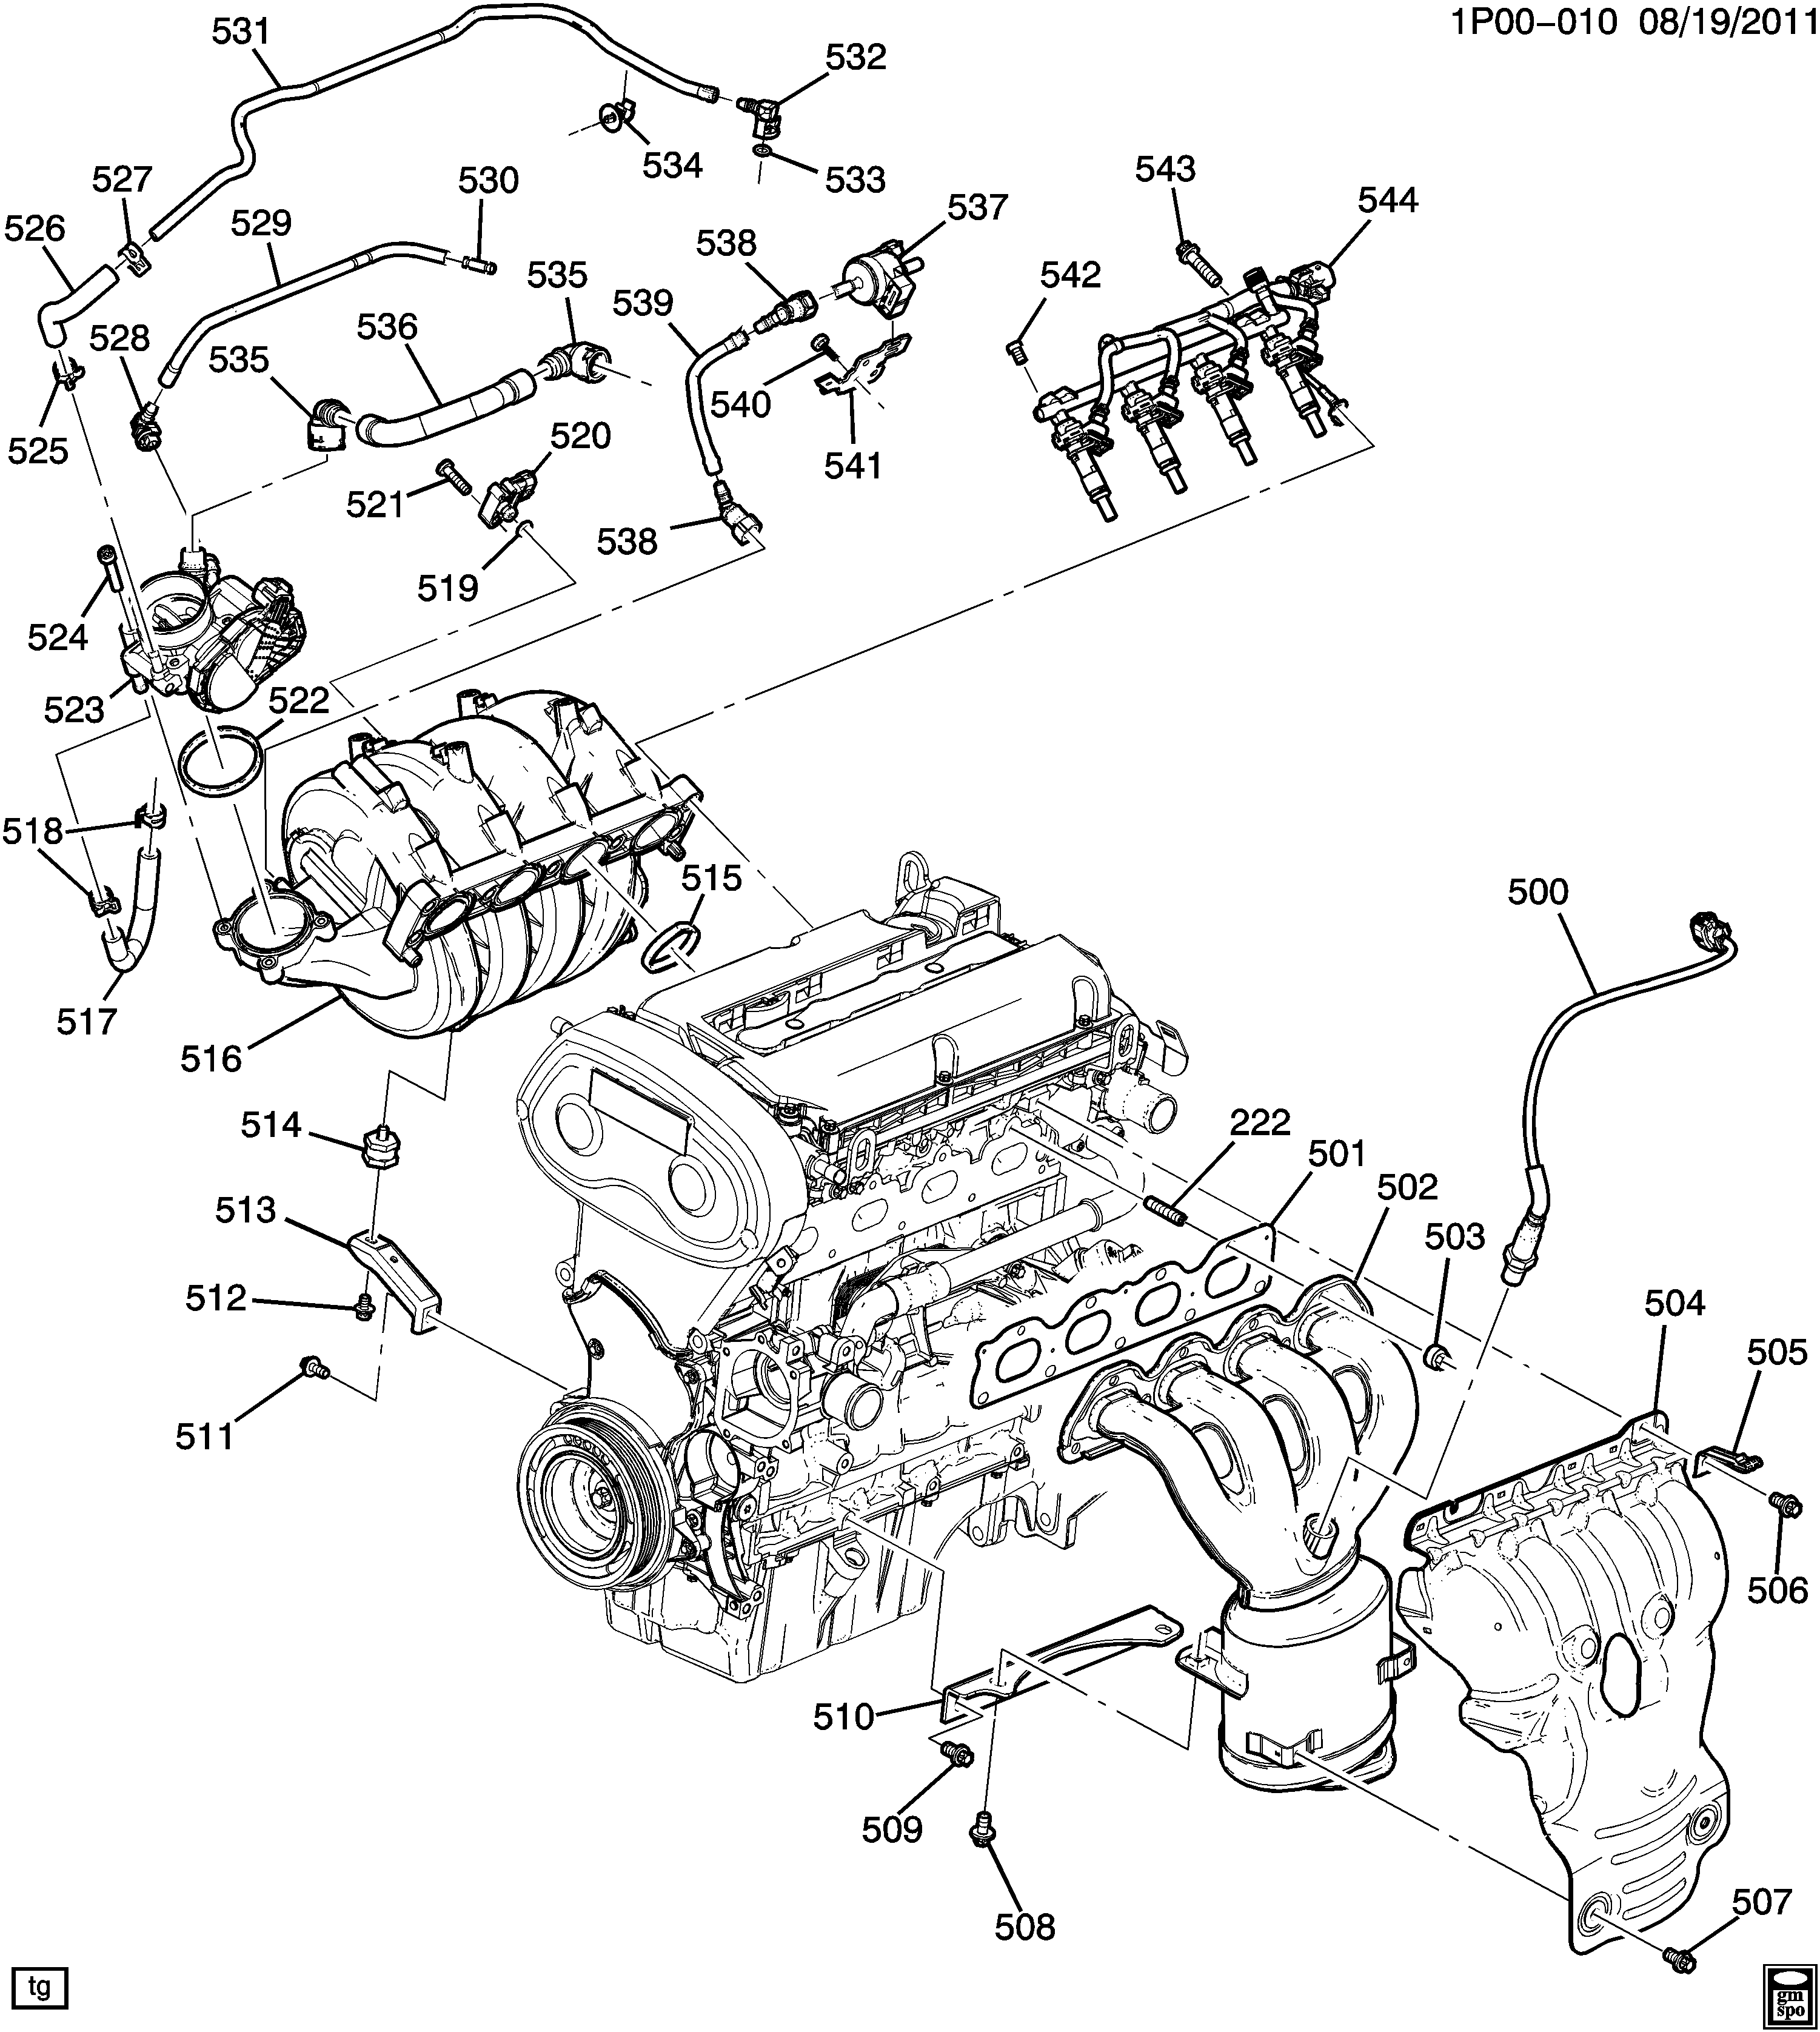 2012 Chevy Sonic Wiring Diagram - Advance Wiring Diagram on chevy captiva interior, chevy captiva seats, chevy captiva dash, chevy captiva warning lights, chevy captiva wheels, chevy captiva engine diagram, chevy captiva engine problems,